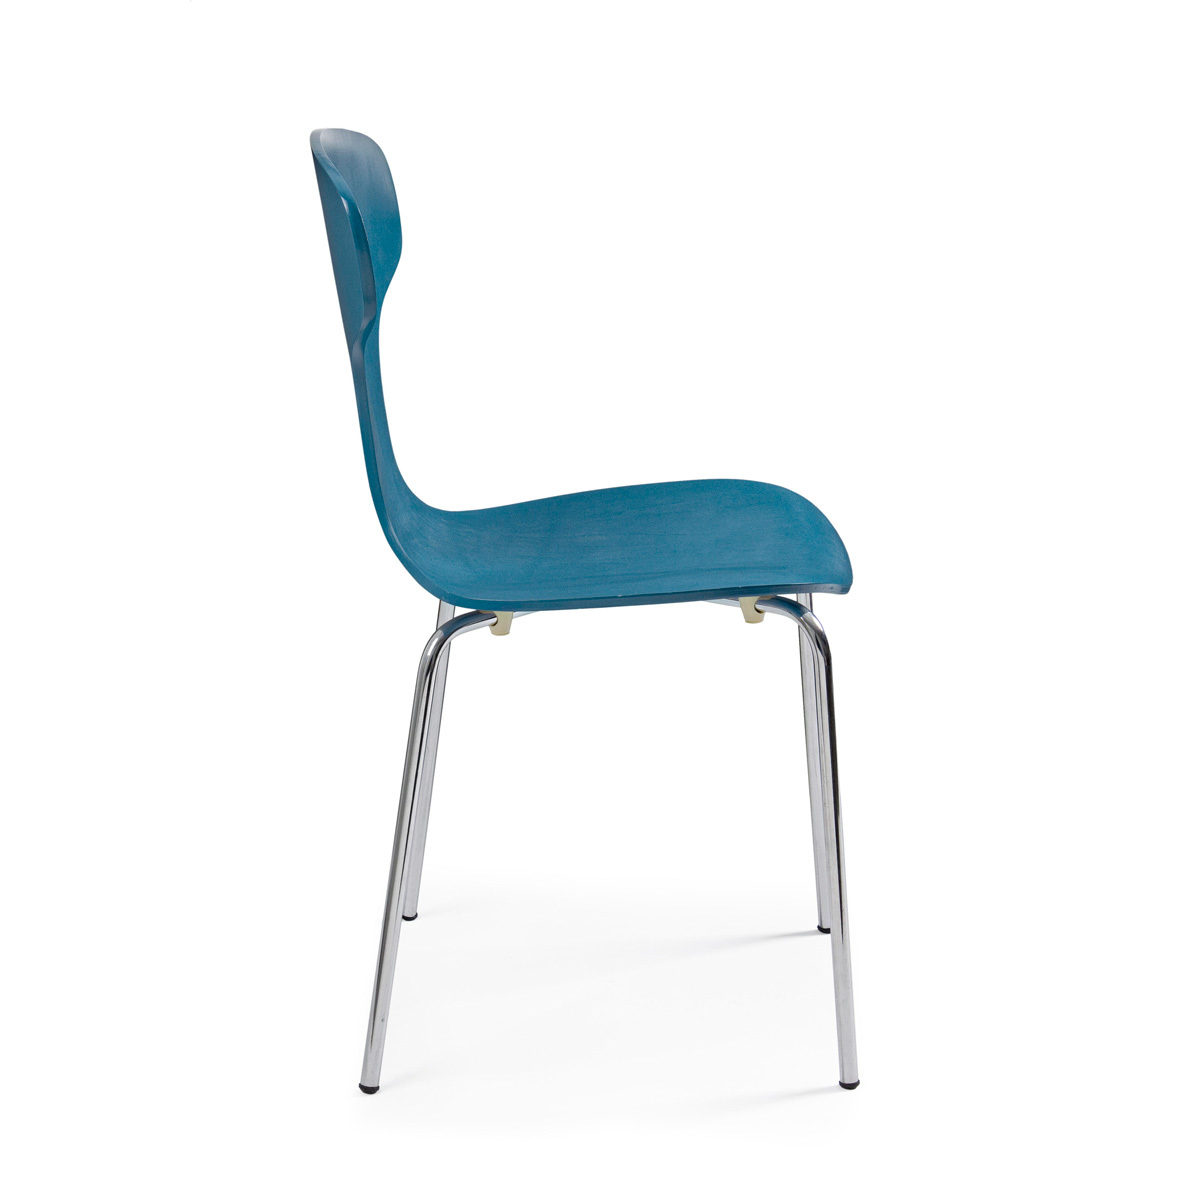 Photos 2: Bizzotto Chair in metal and wood - cobalt 0731624